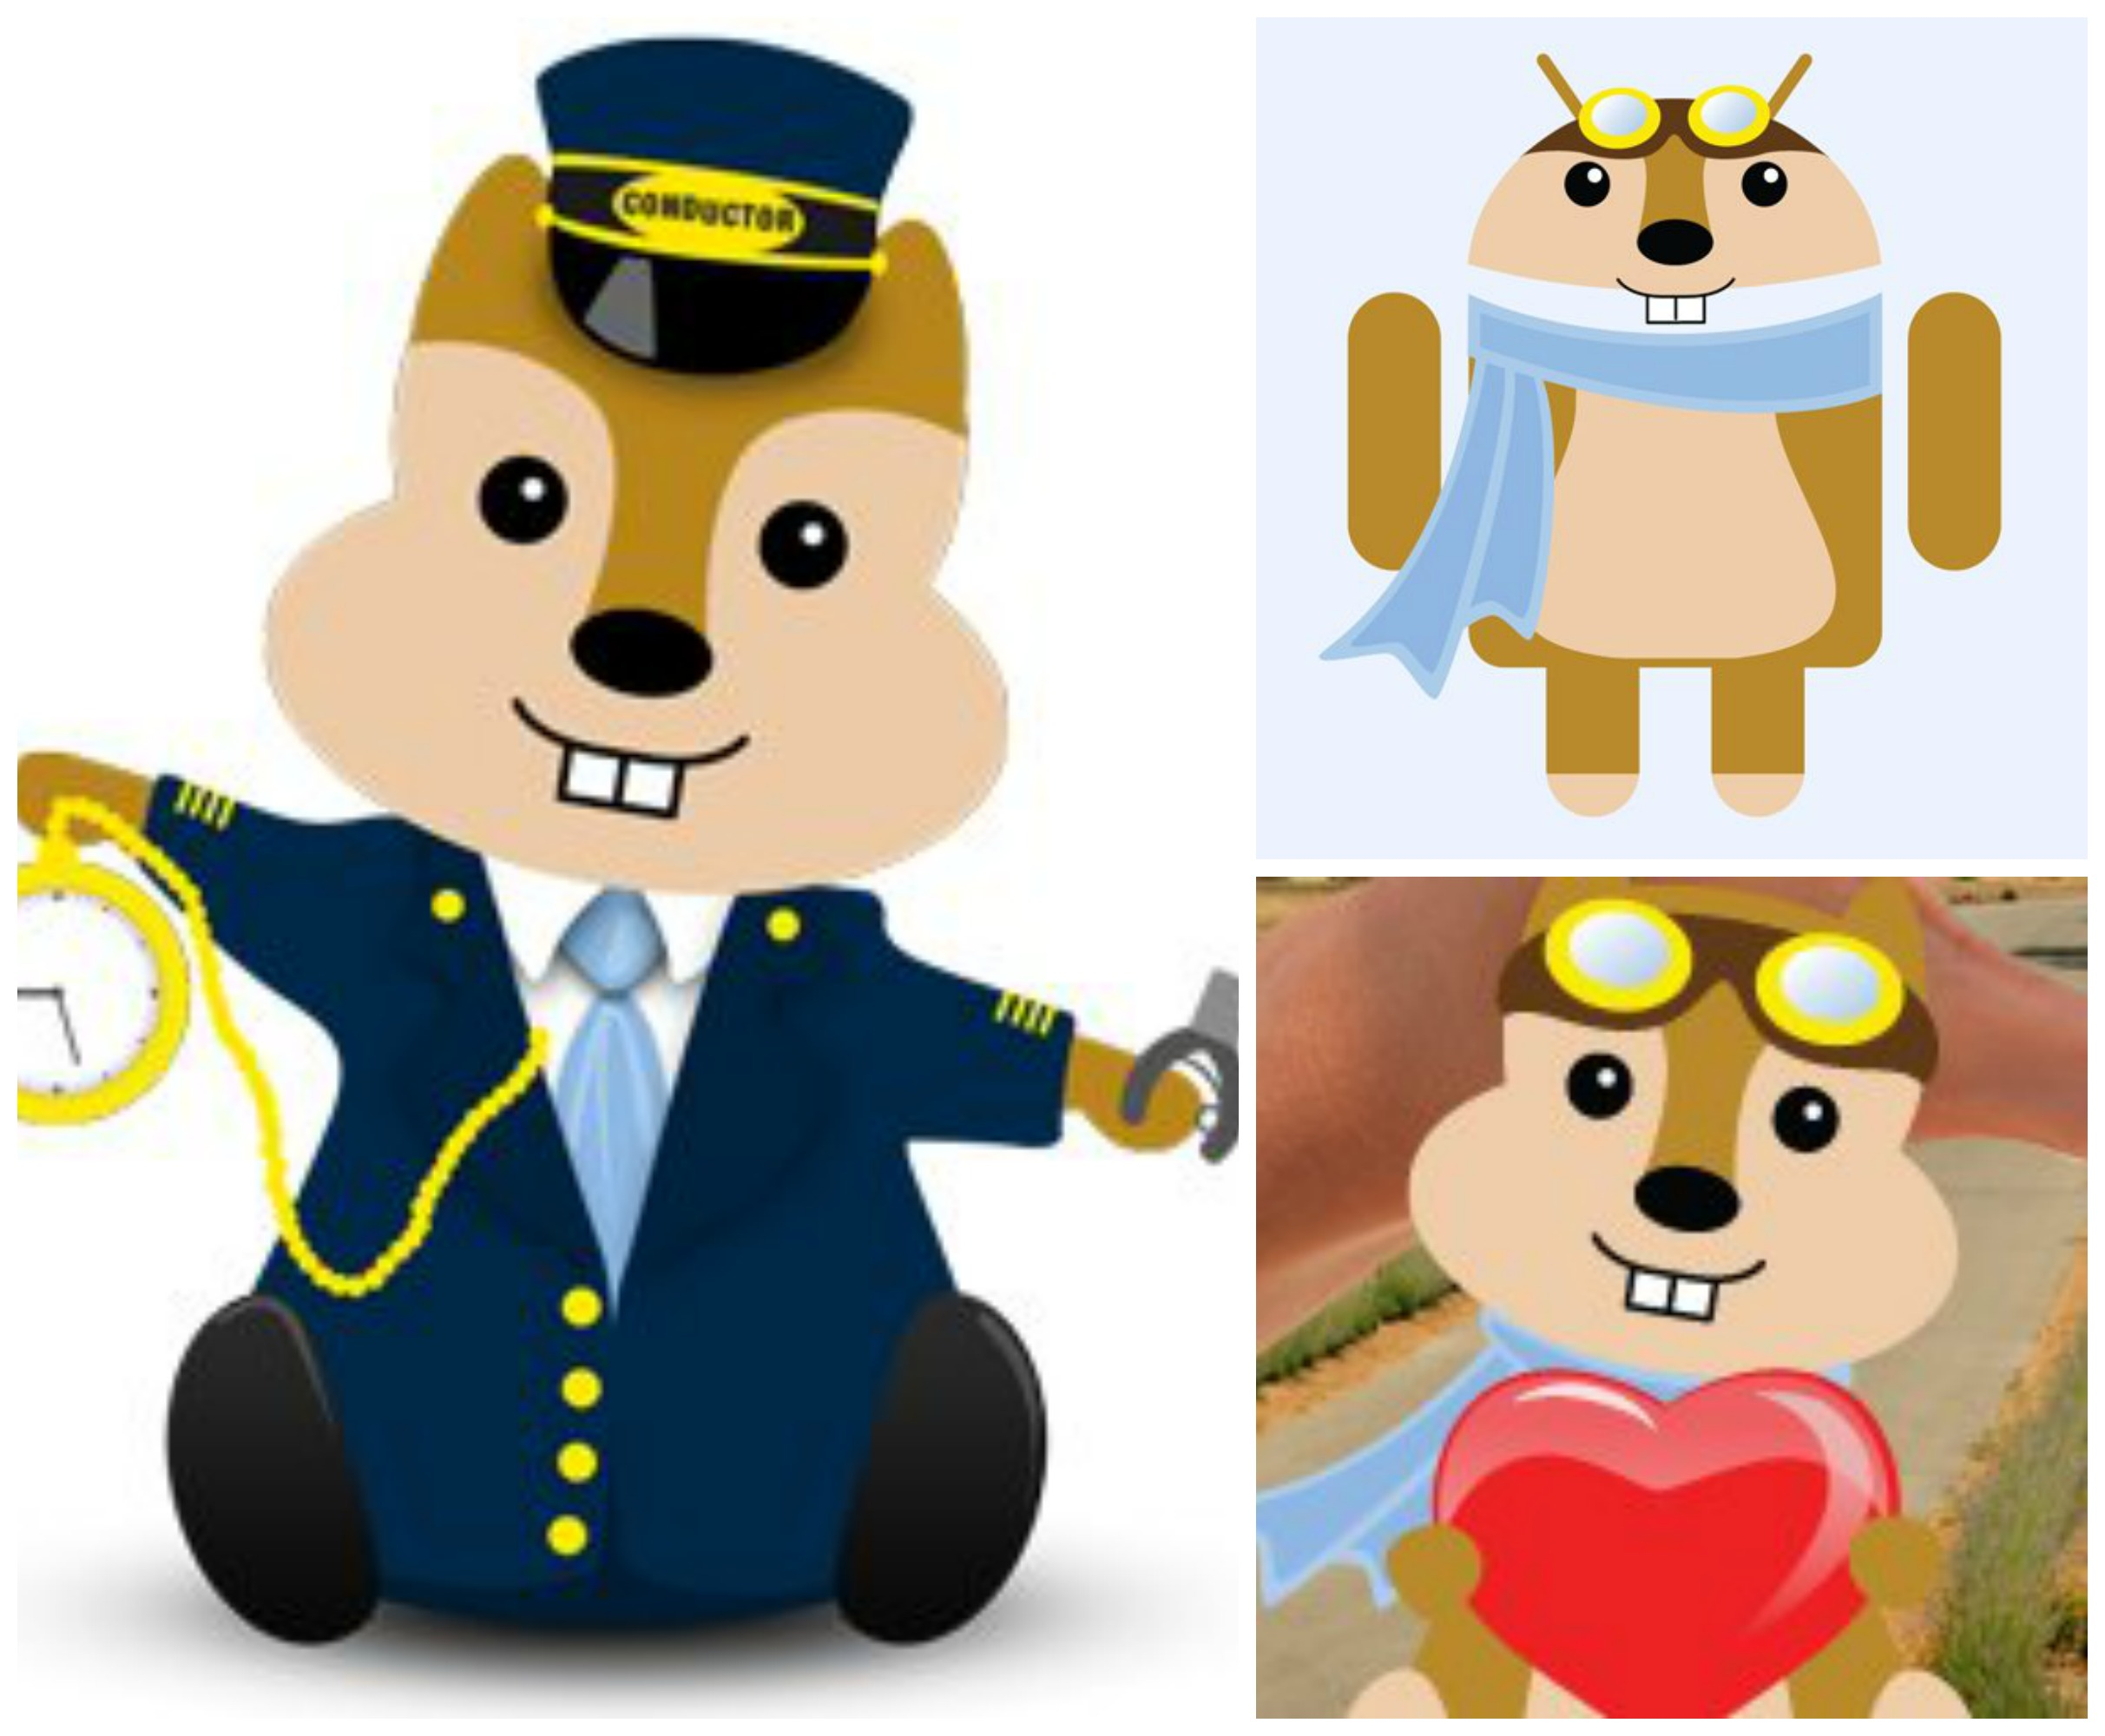 The 10 Cutest Brand Mascots of All Time